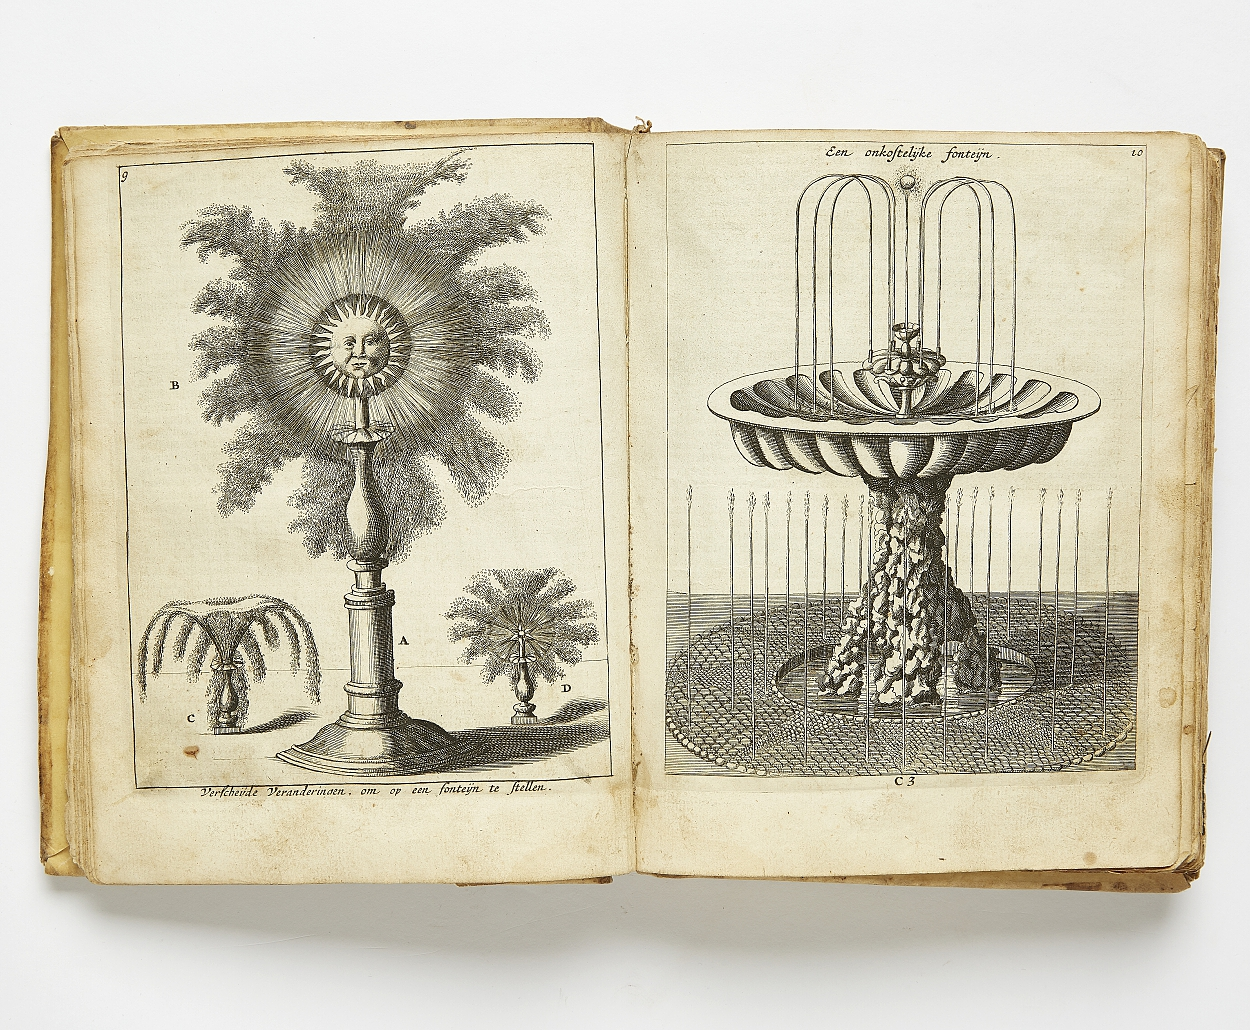 Rare work on garden plans Le Jardinier 1669-70